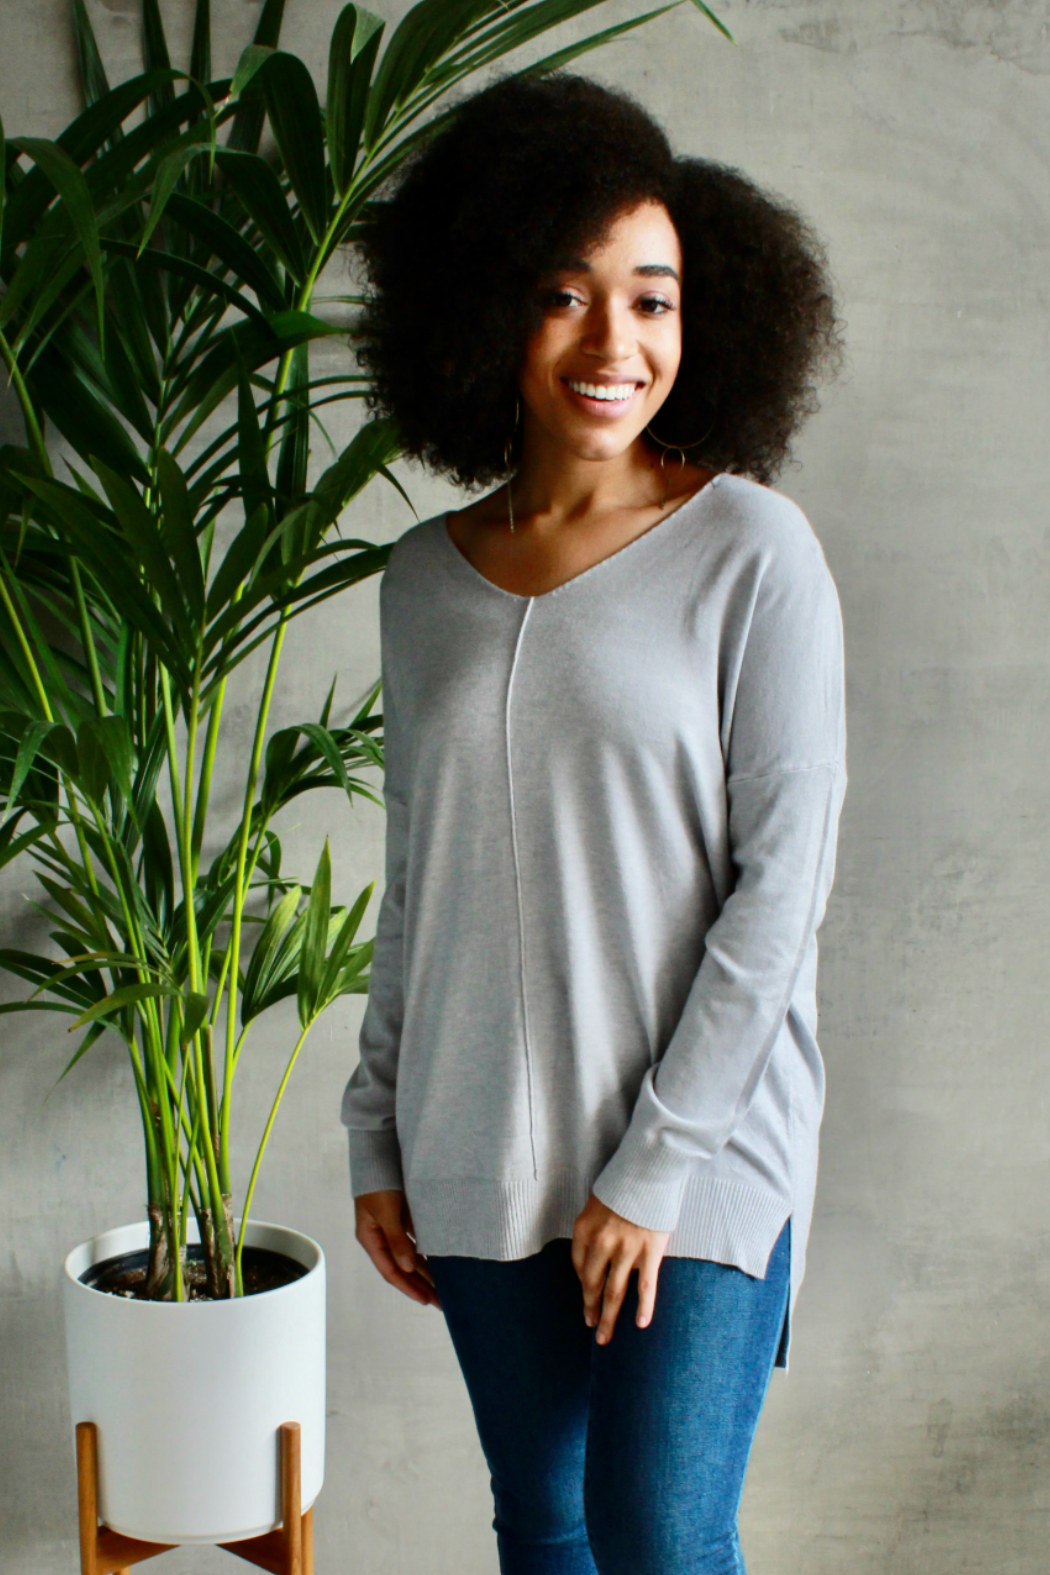 Model wearing the v-neck grey sweater with a seam down the front middle